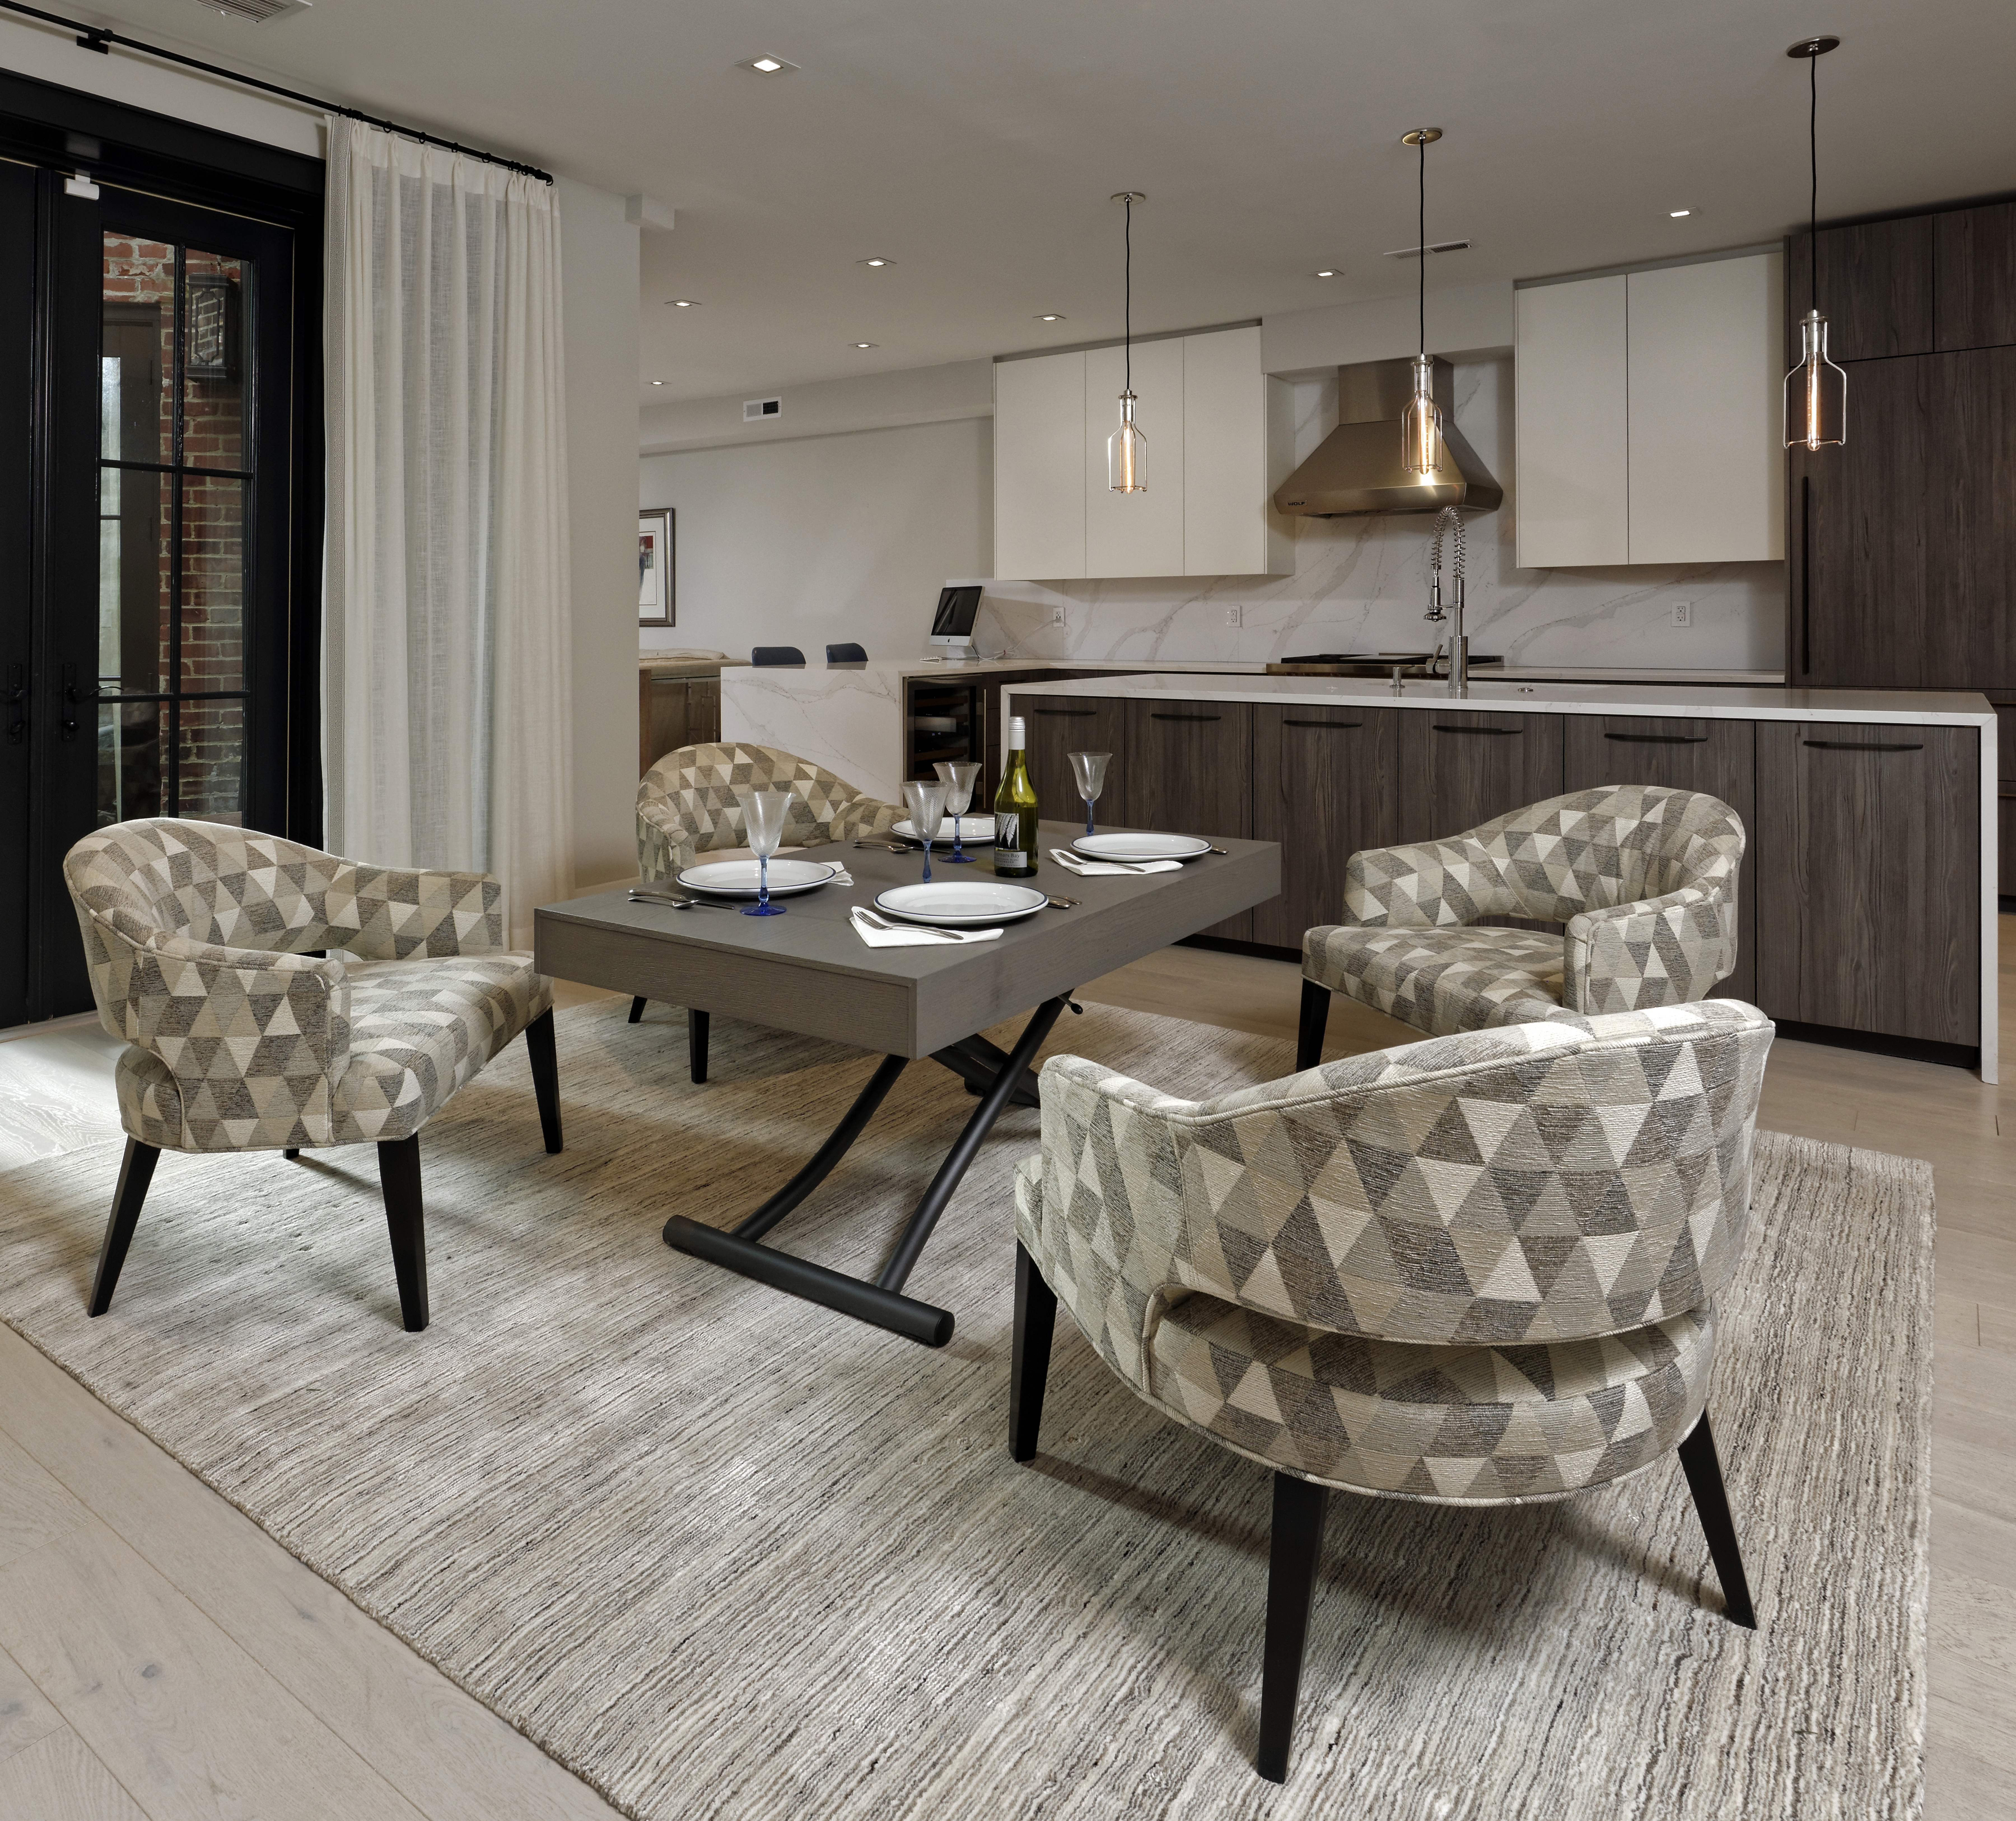 Our Passo height-adjusting coffee table was the perfect fit for this flexible seating / dining area off the kitchen.